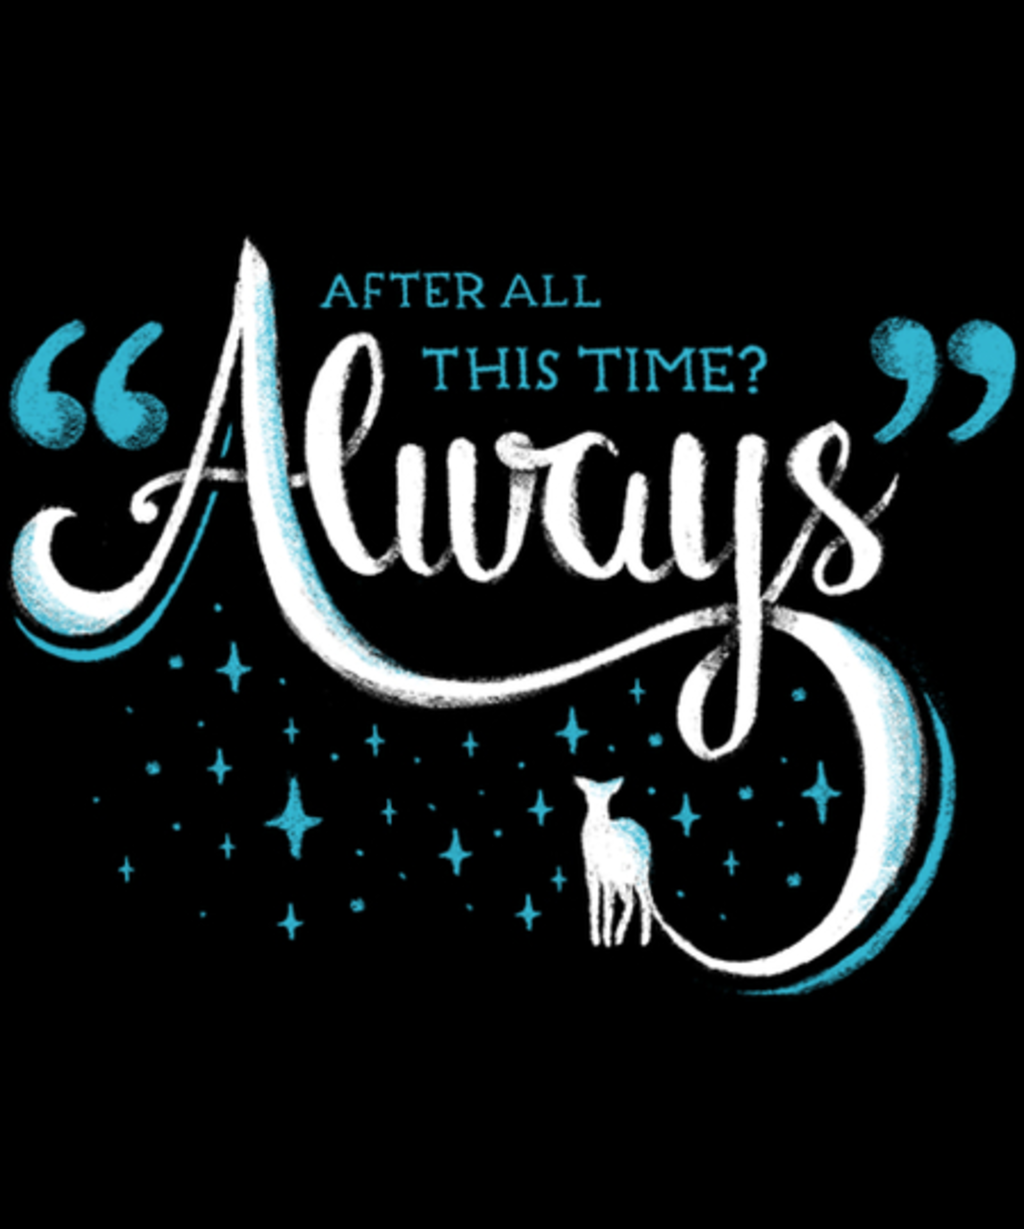 Qwertee: After all this time